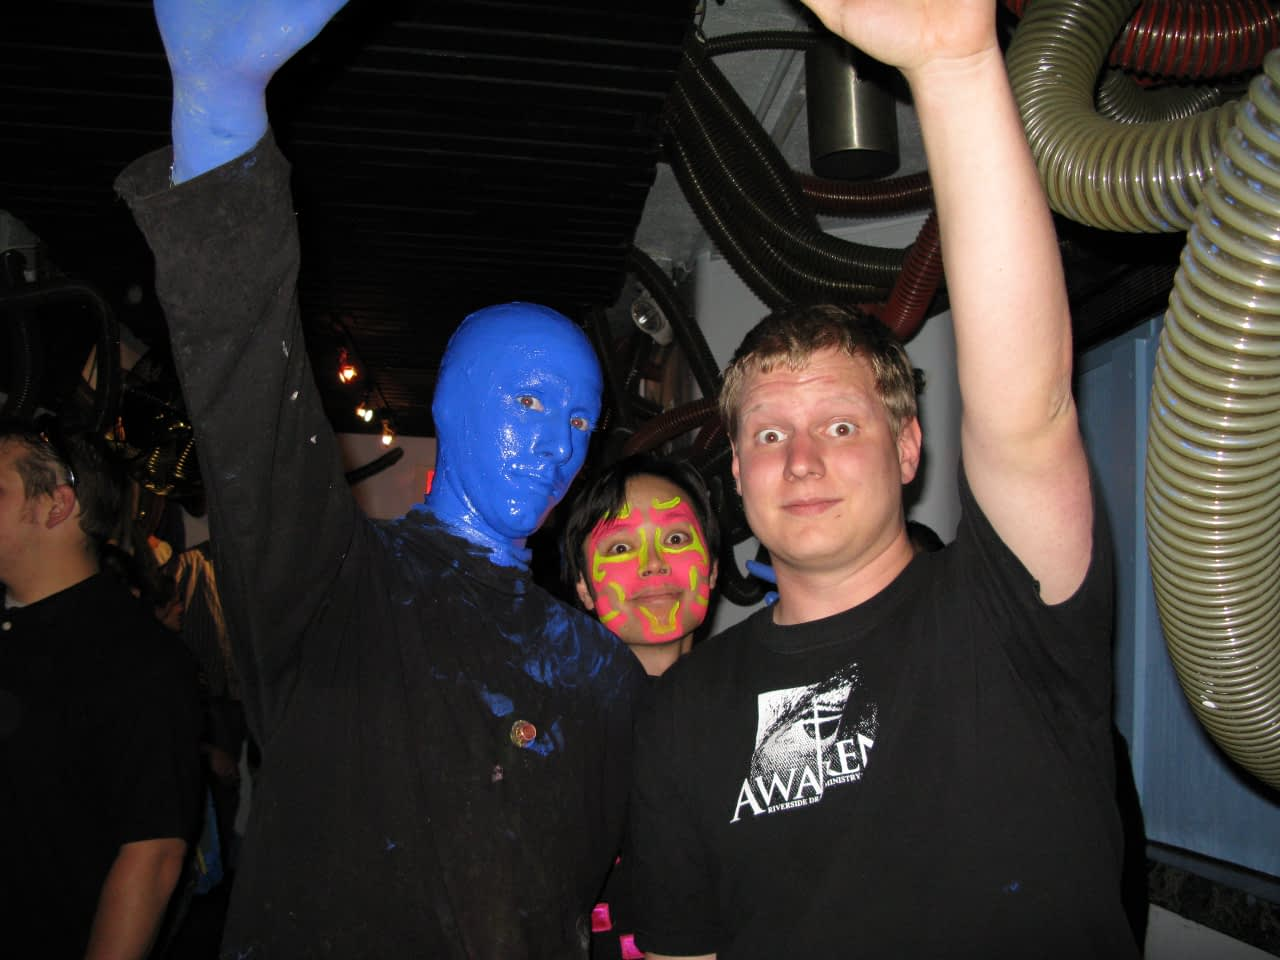 Pat with Blue Man and musician